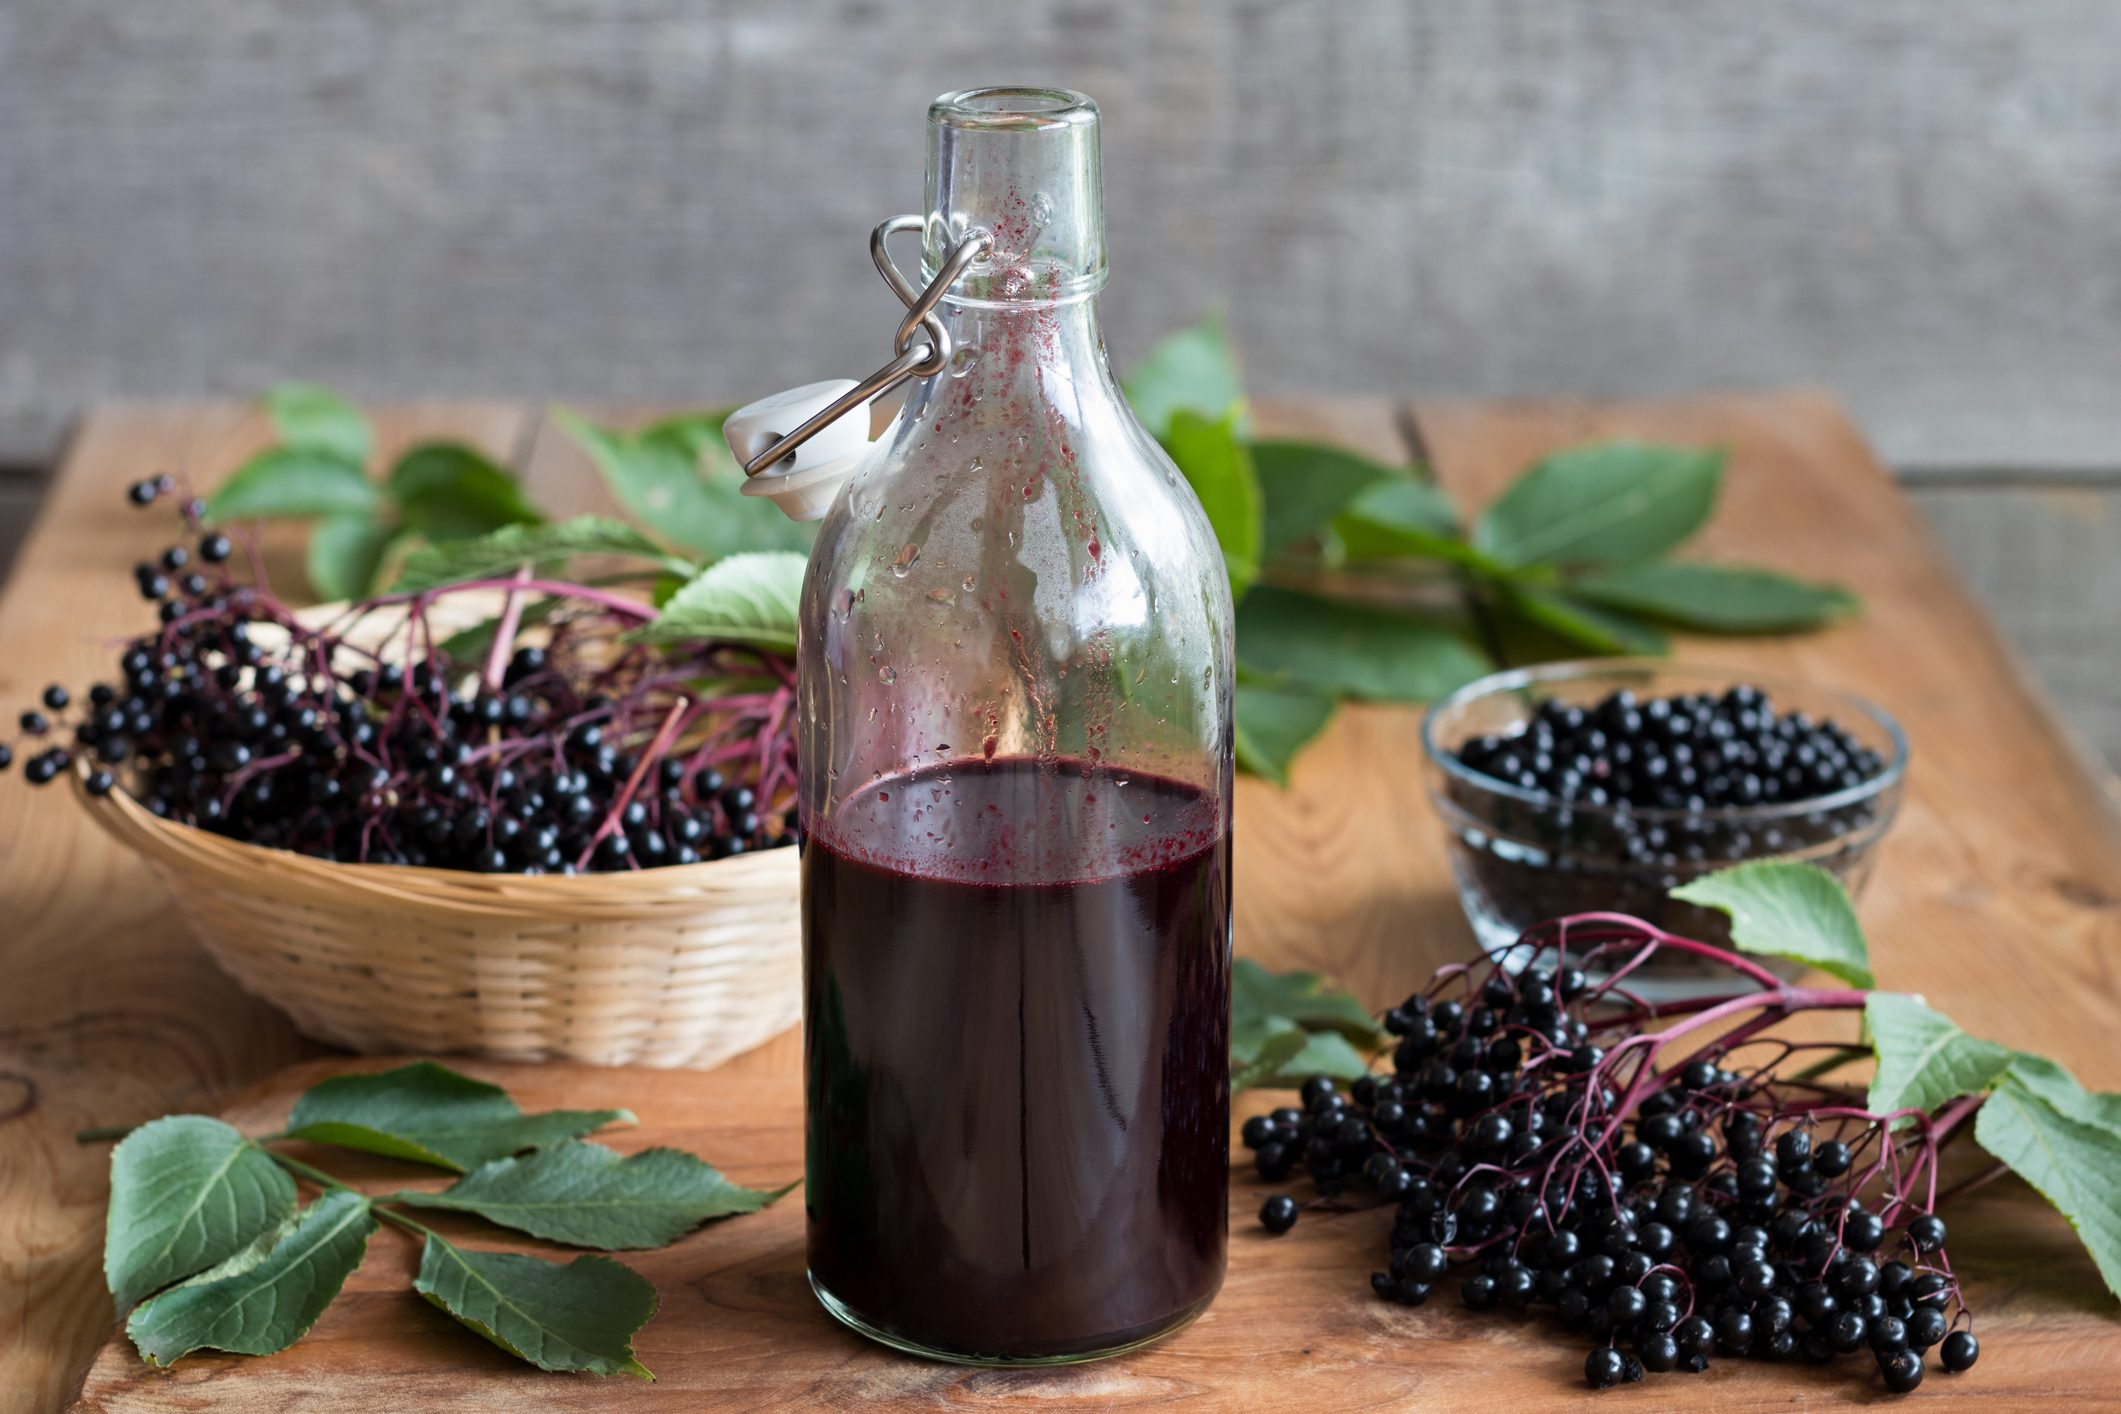 A bottle of elderberry syrup and elderberries